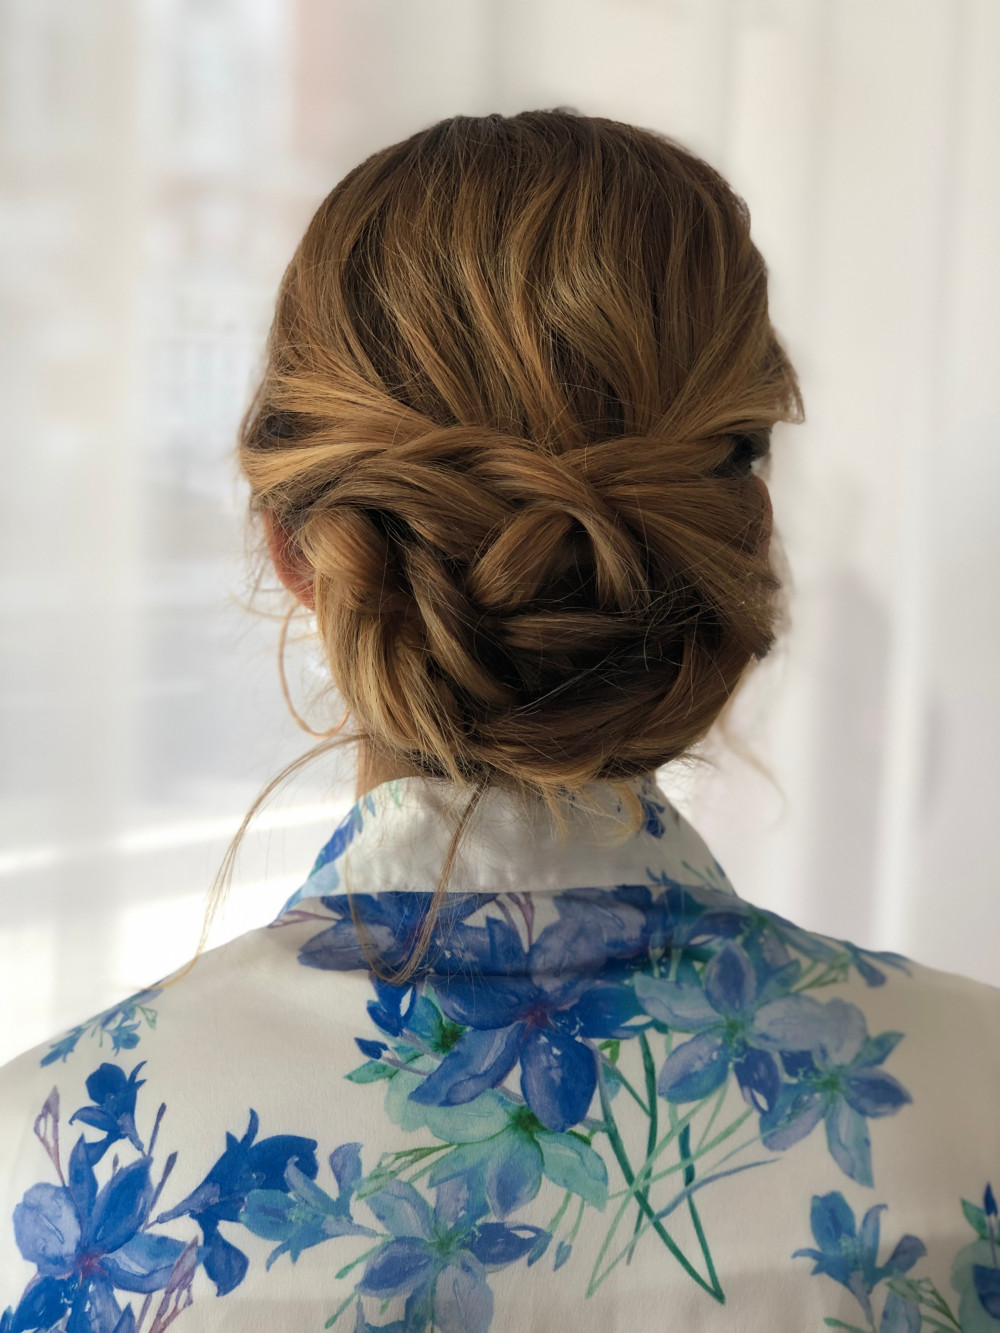 Soft, understated elegant up do! Keep the hair soft and romantic with curls framing the face. - Make Me Bridal Artist: Neecol Corry Weddings. #classic #glamorous #bridalhair #romantichairup #hairup #forthenaturalbride